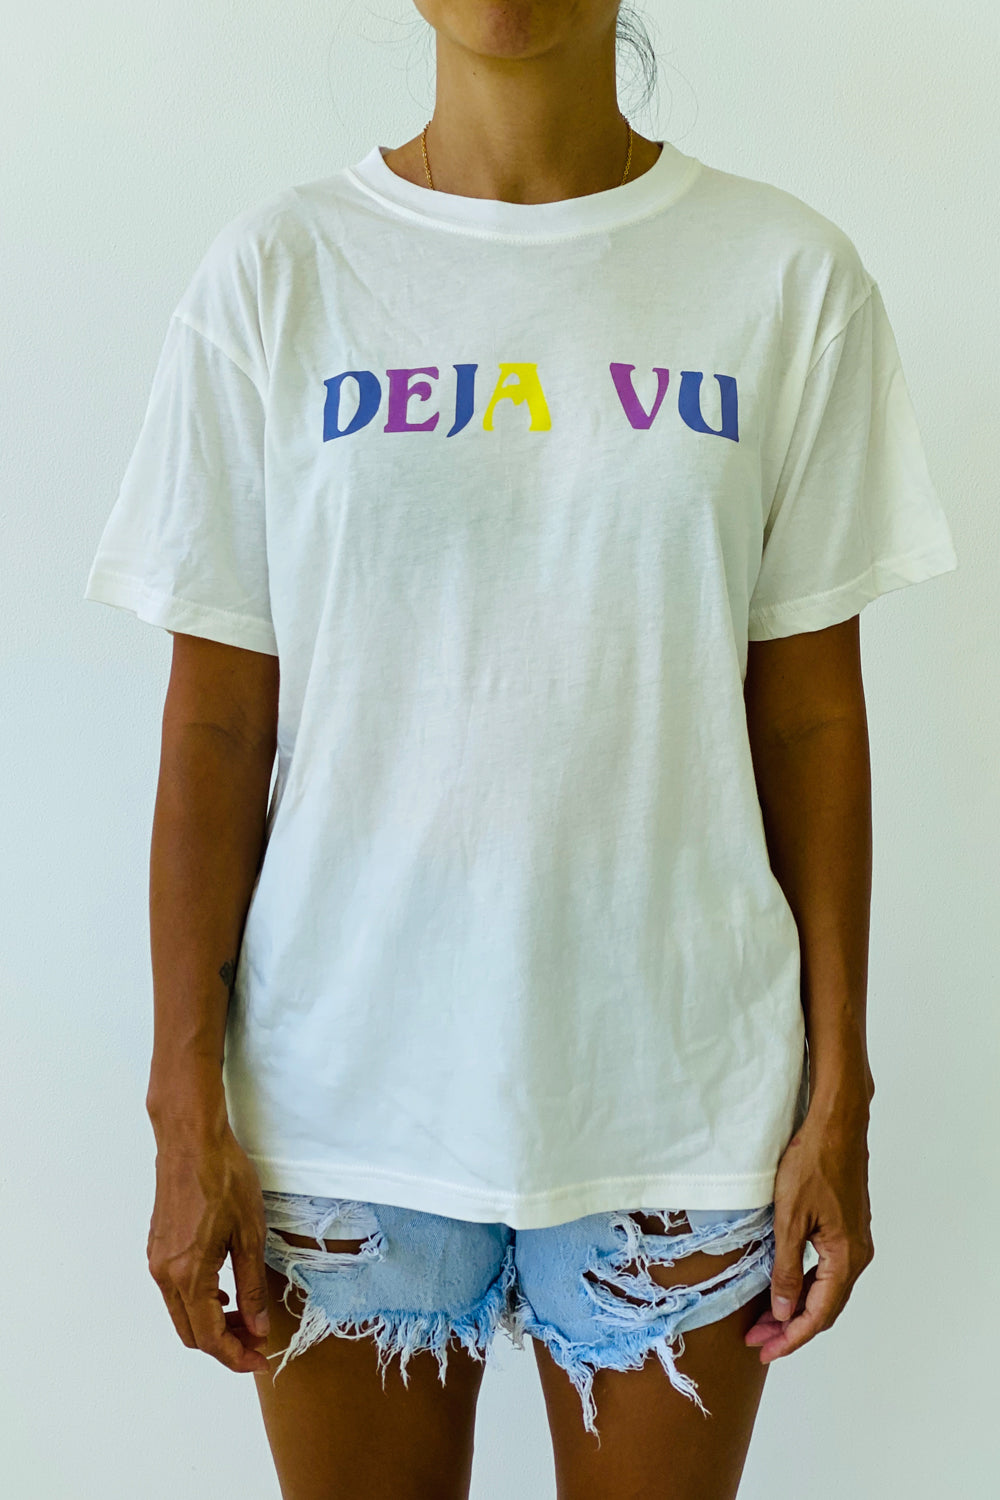 Dejavu - Women Tshirt in White